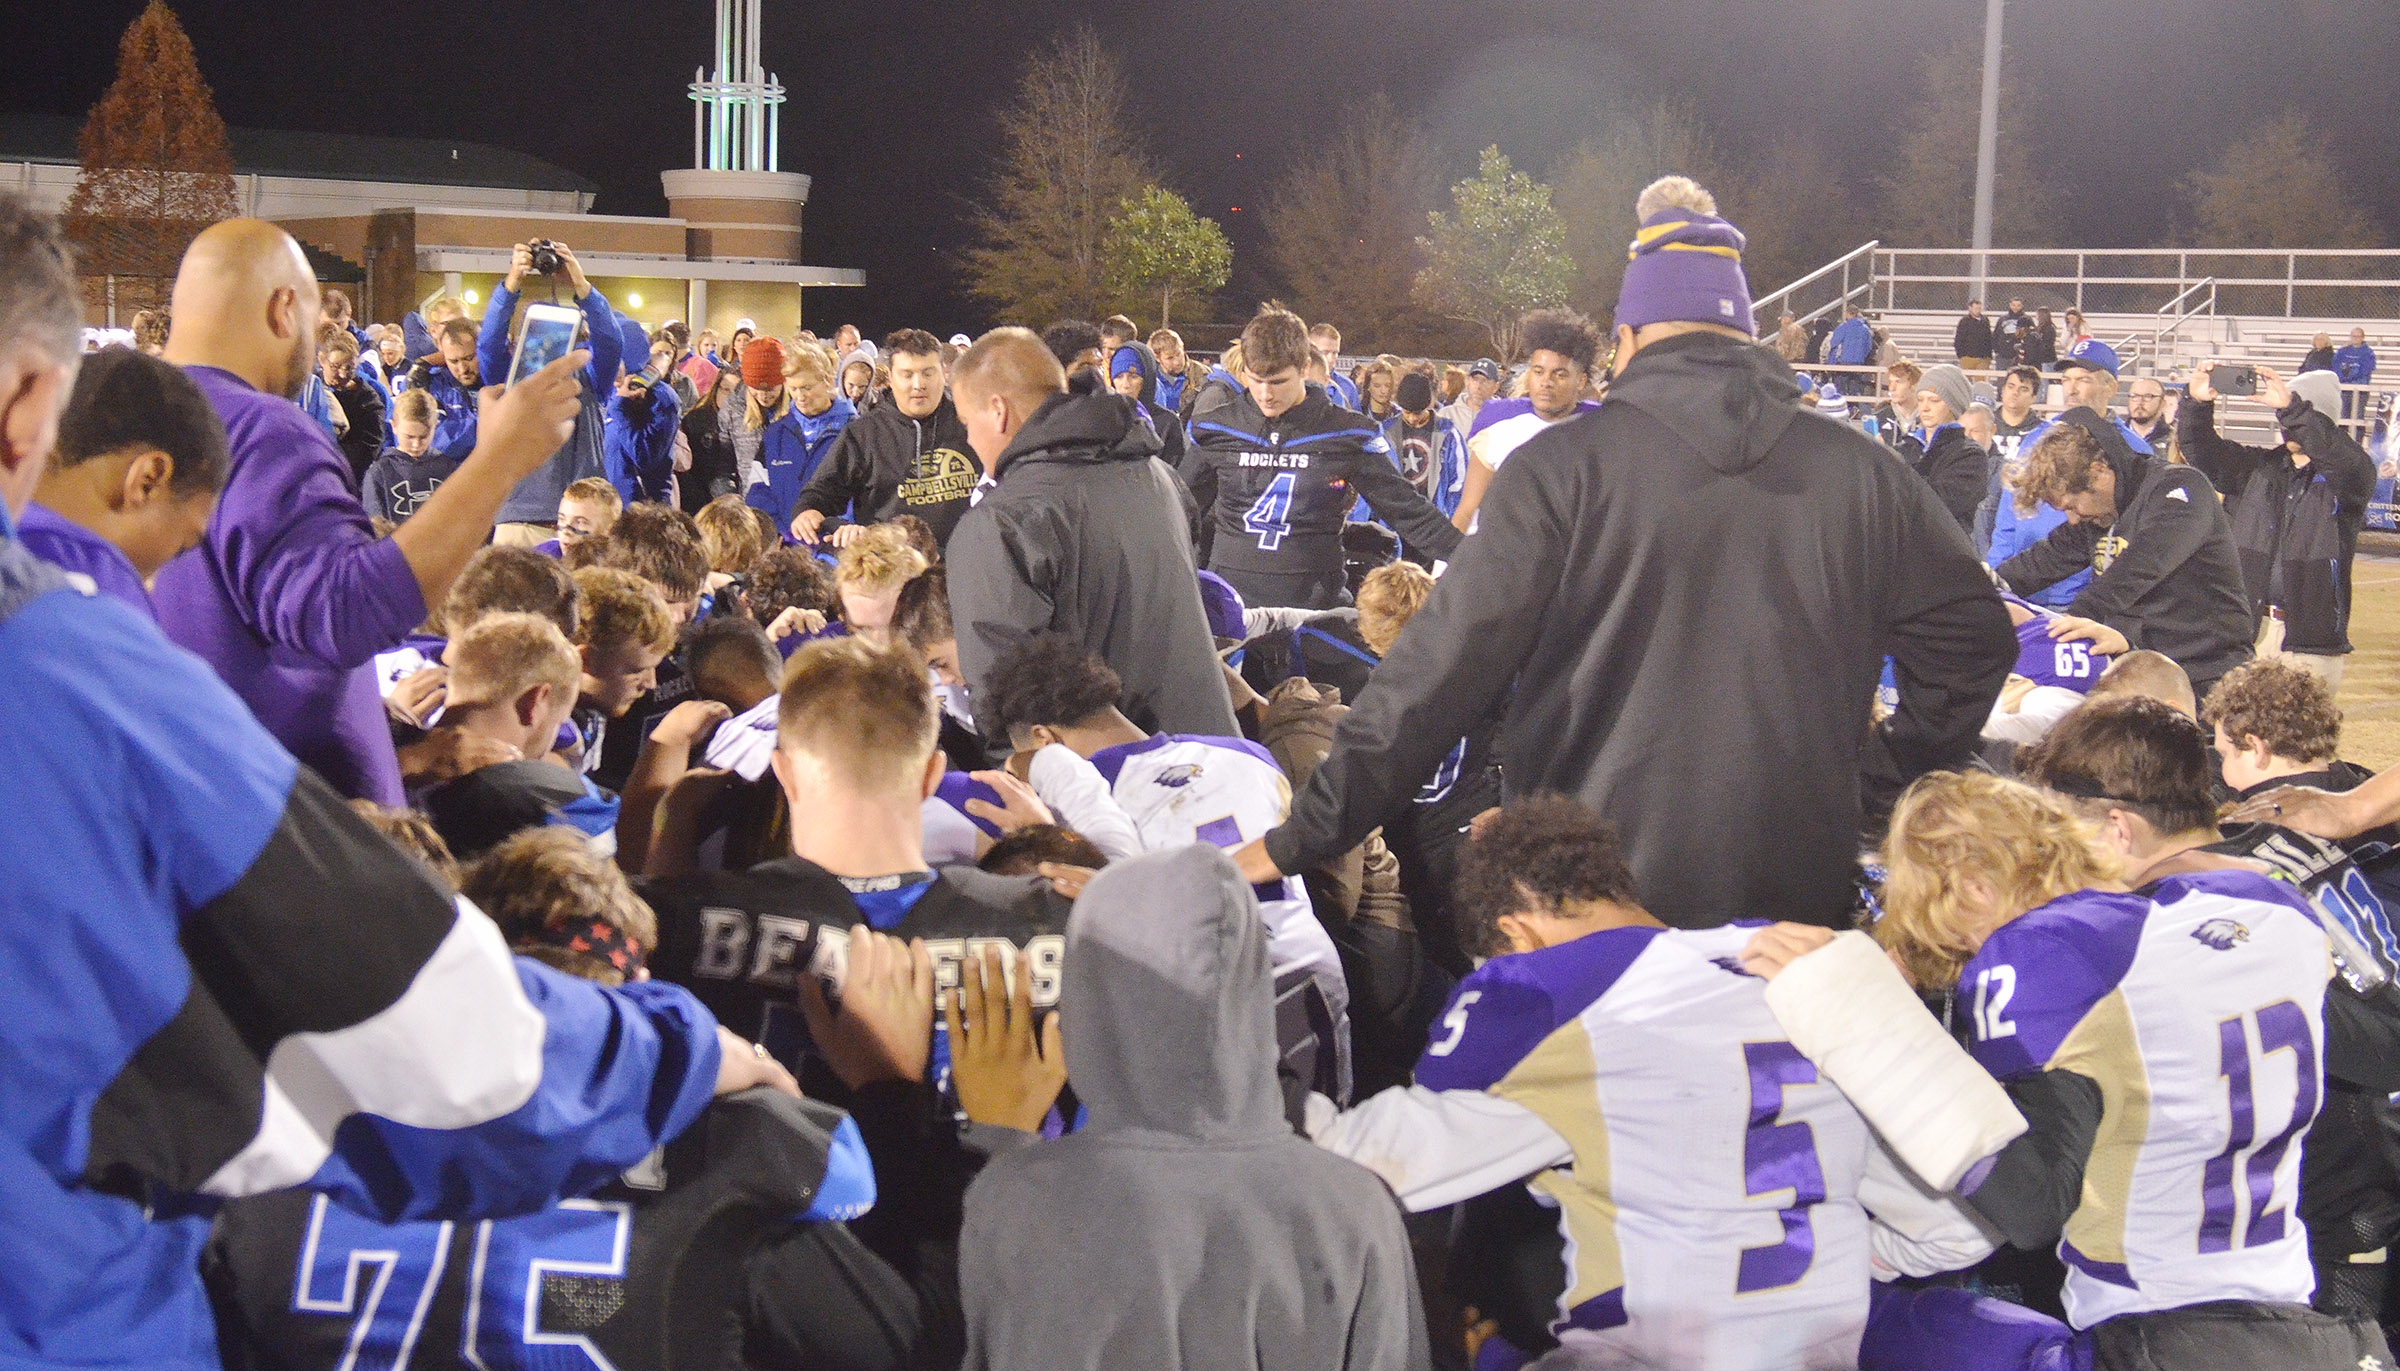 CHS head football coach Dale Estes prays with his players and coaches, along with Crittenden County players and coaches.